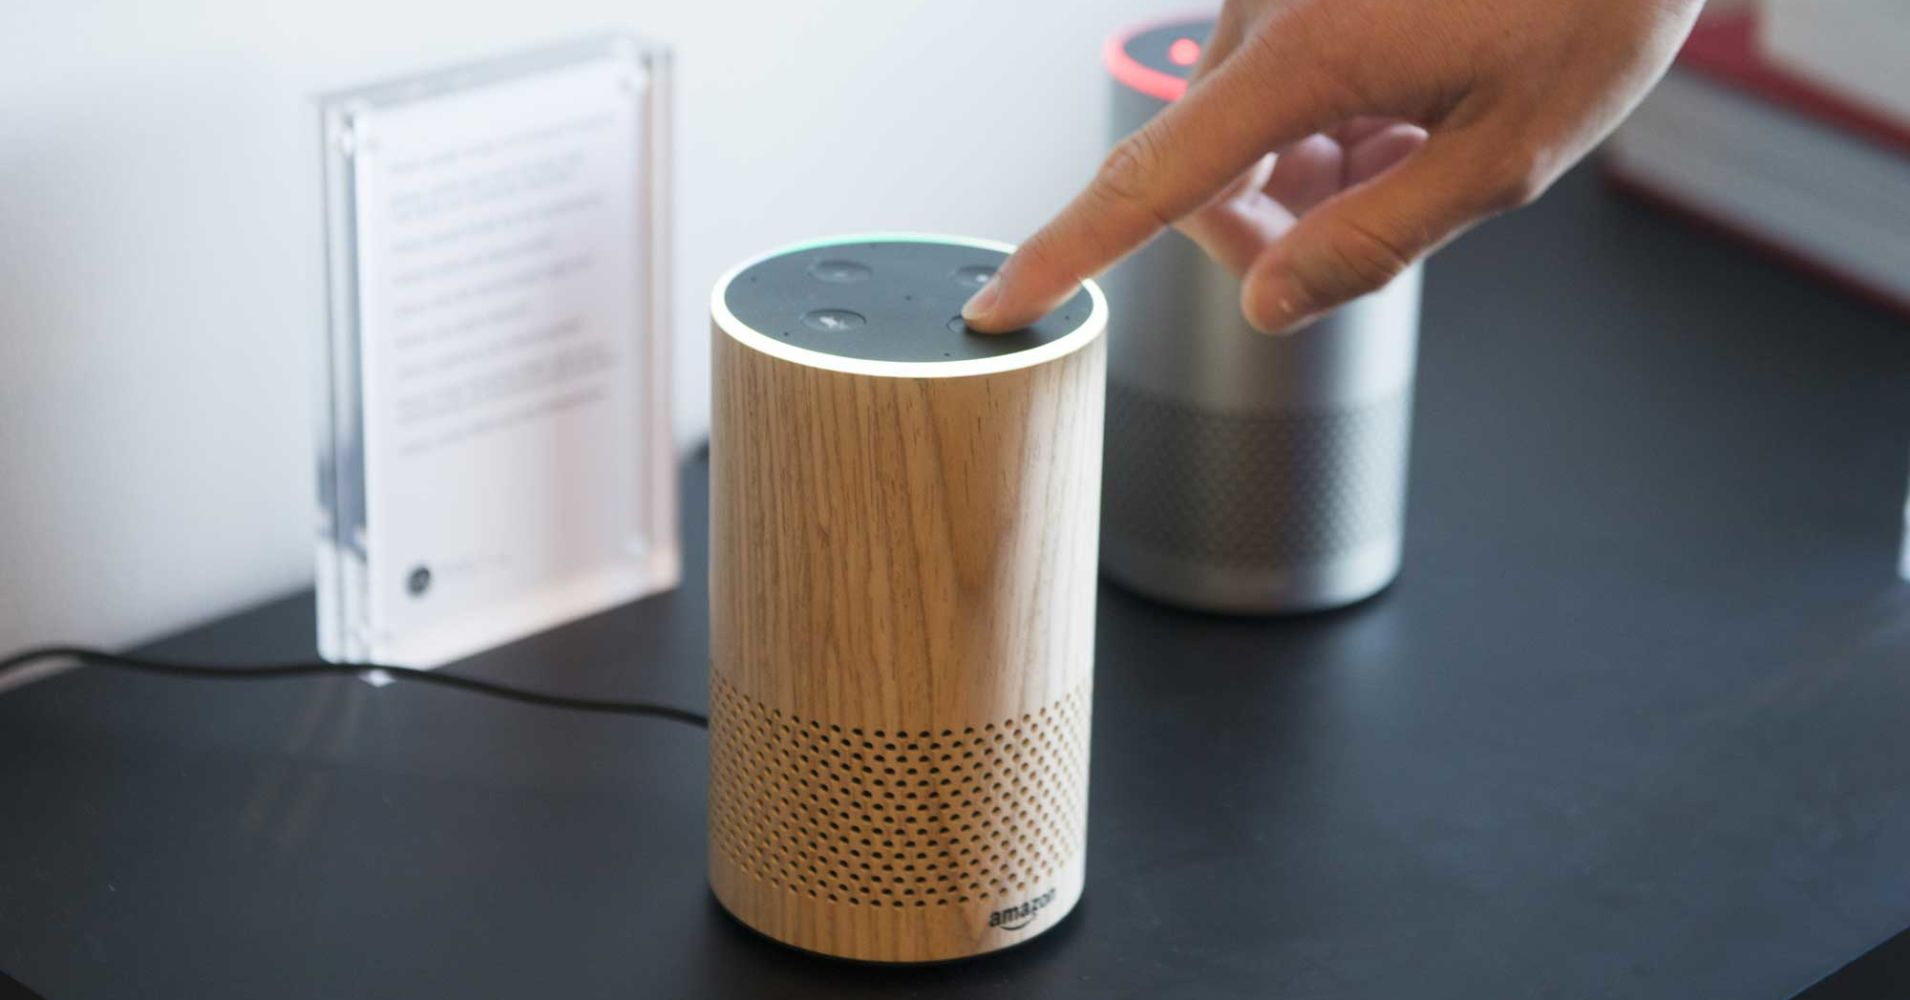 Voice technology will replace keyboards in five years: VC investor